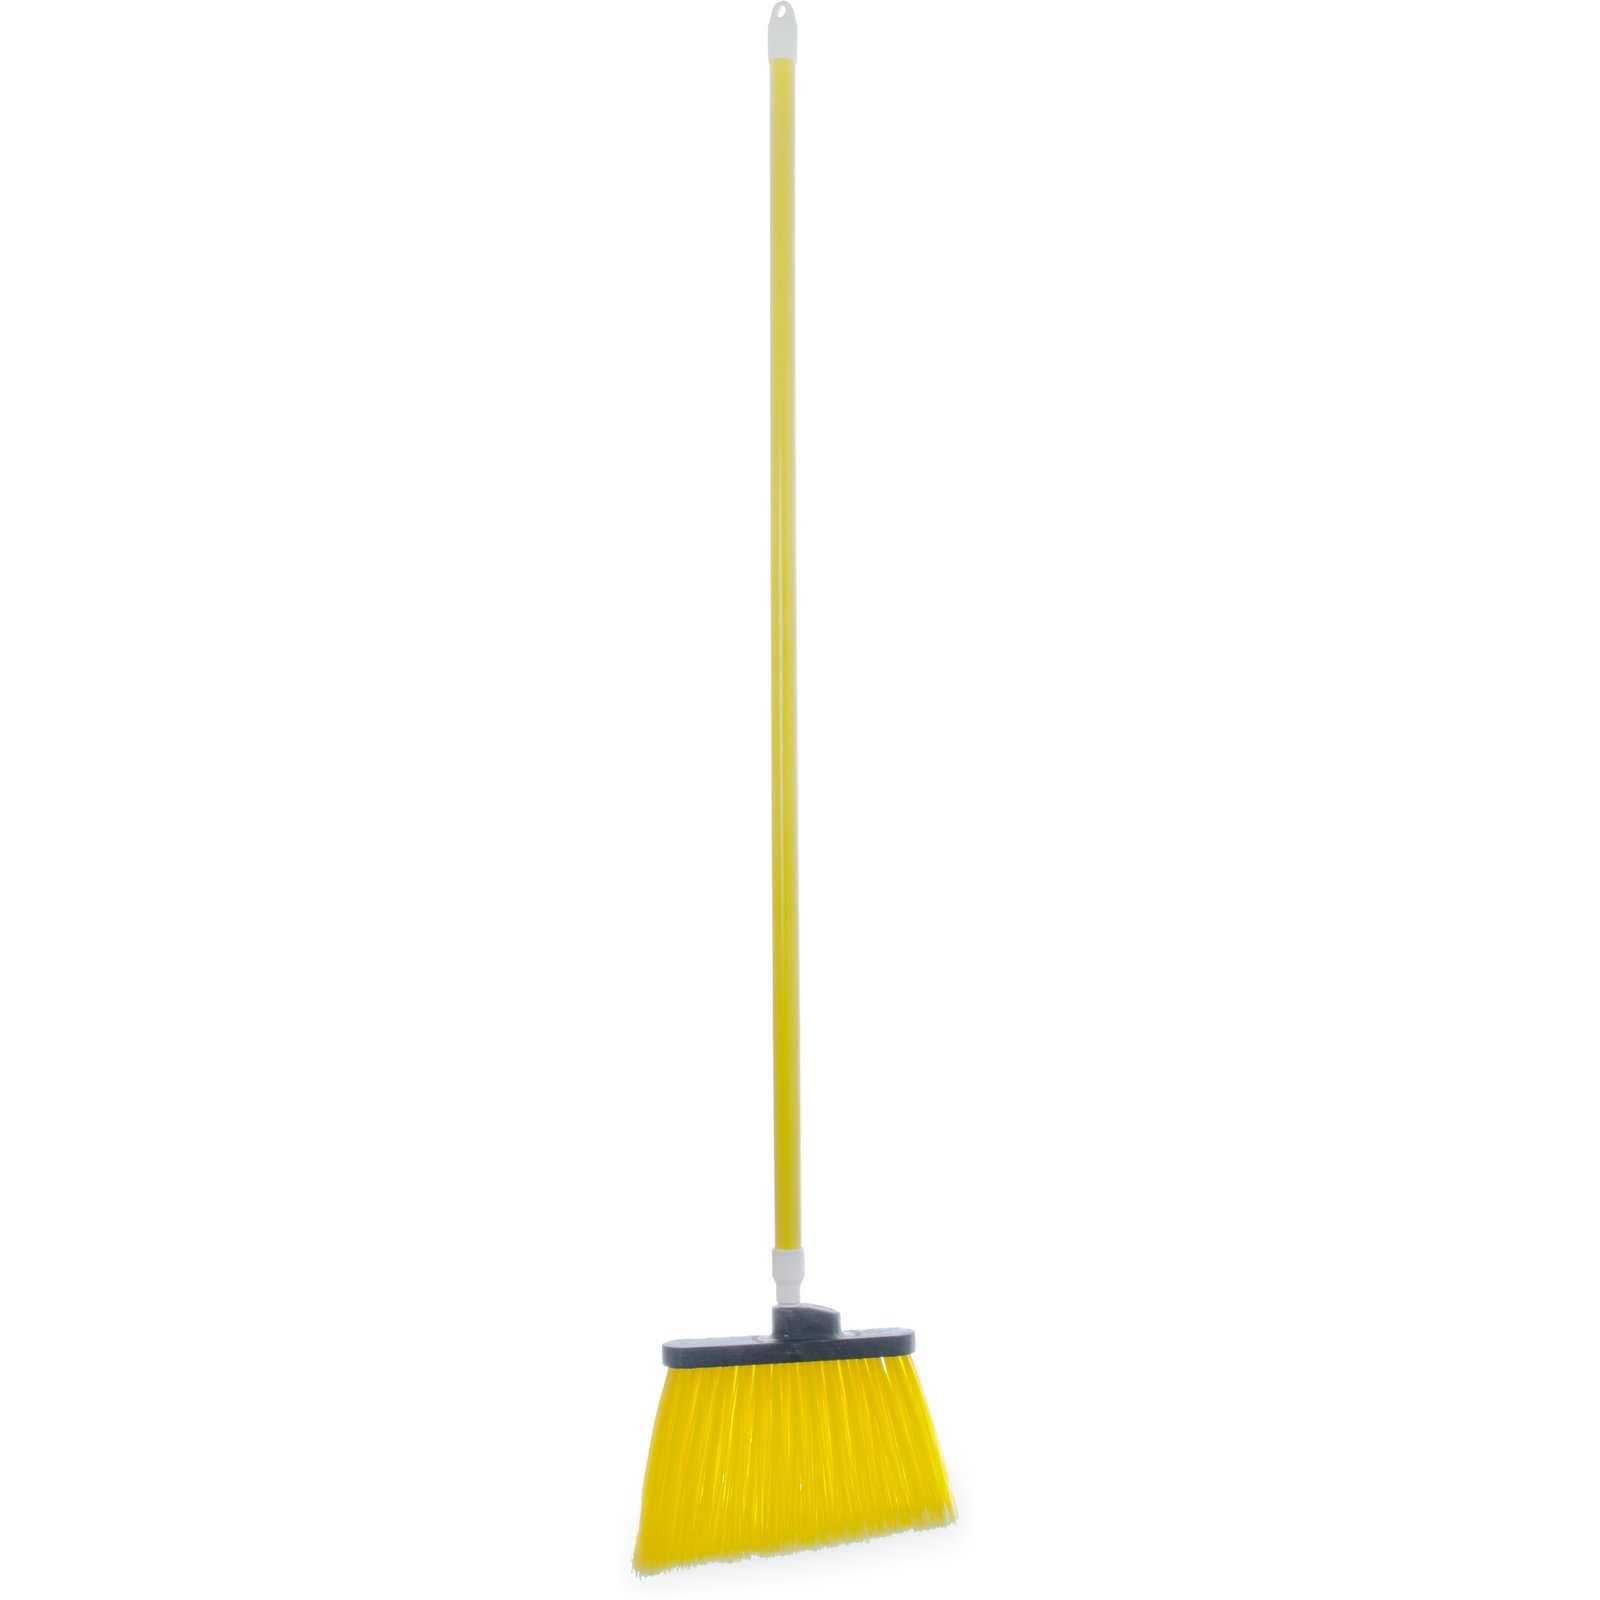 "BROOM 54"" FLAGGED ANGLE W/ POLYPROPYLENE BRISTLES YELLOW"